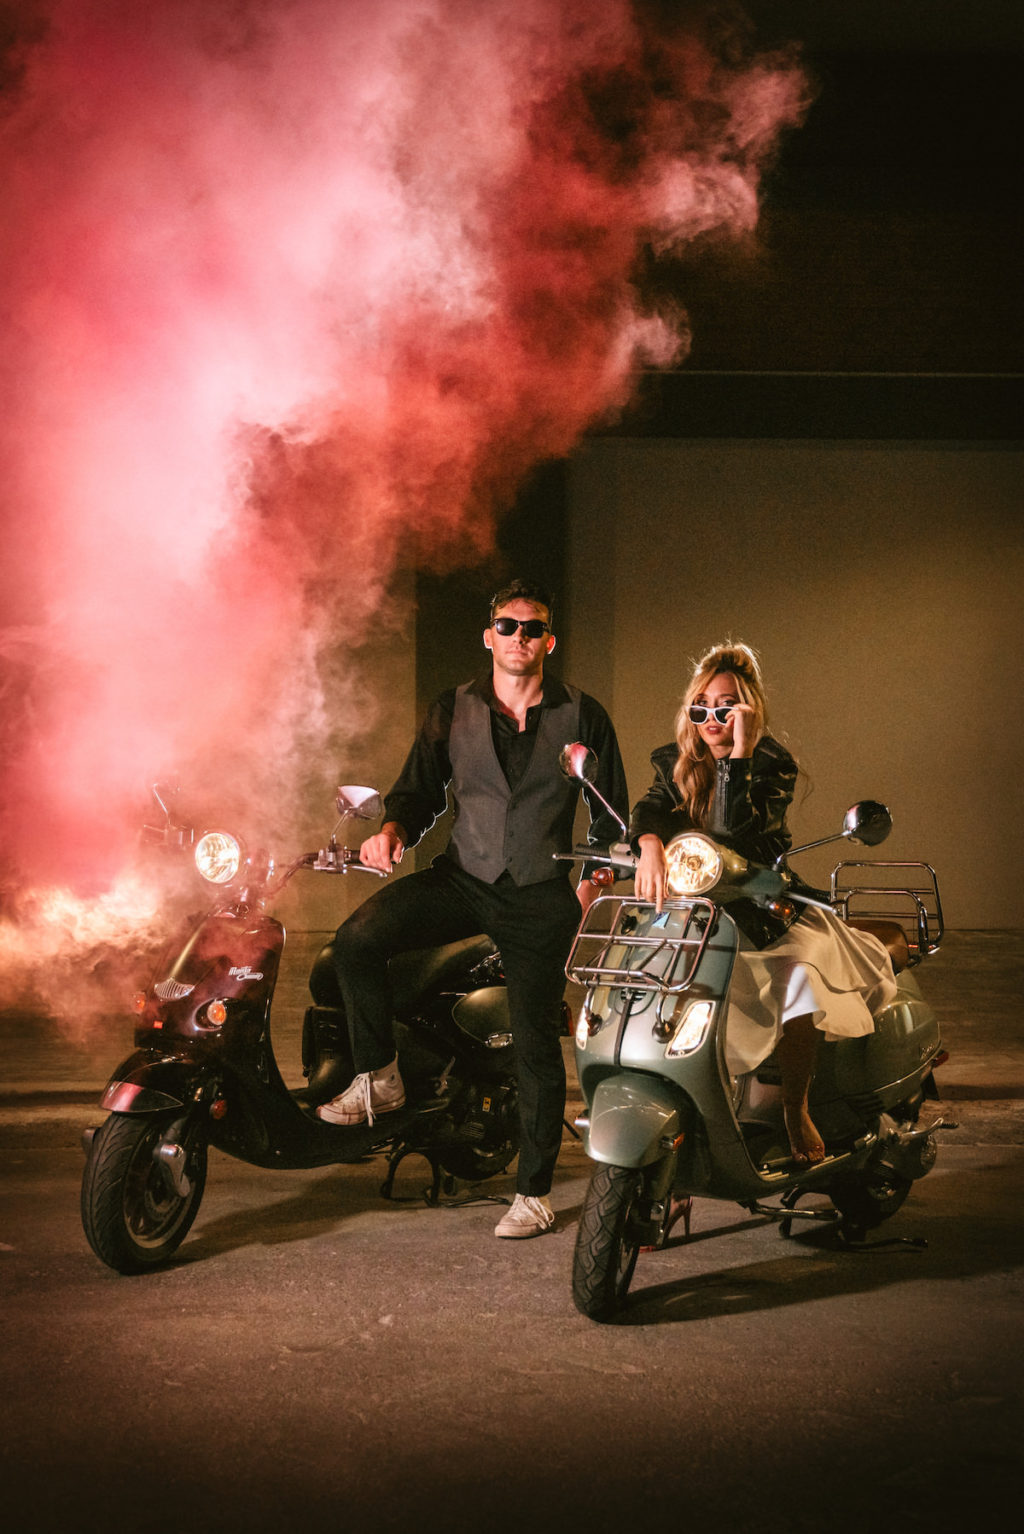 Urban and Edgy Bride in Leather Jacket on Silver Moto Scooter, Groom in Black Dress Shirt and Pants with Gray Vest on Black Scooter and Pink Smoke Bomb | Tampa Bay Wedding Photographer Bonnie Newman Creative | Wedding Designer and Planner UNIQUE Weddings + Events